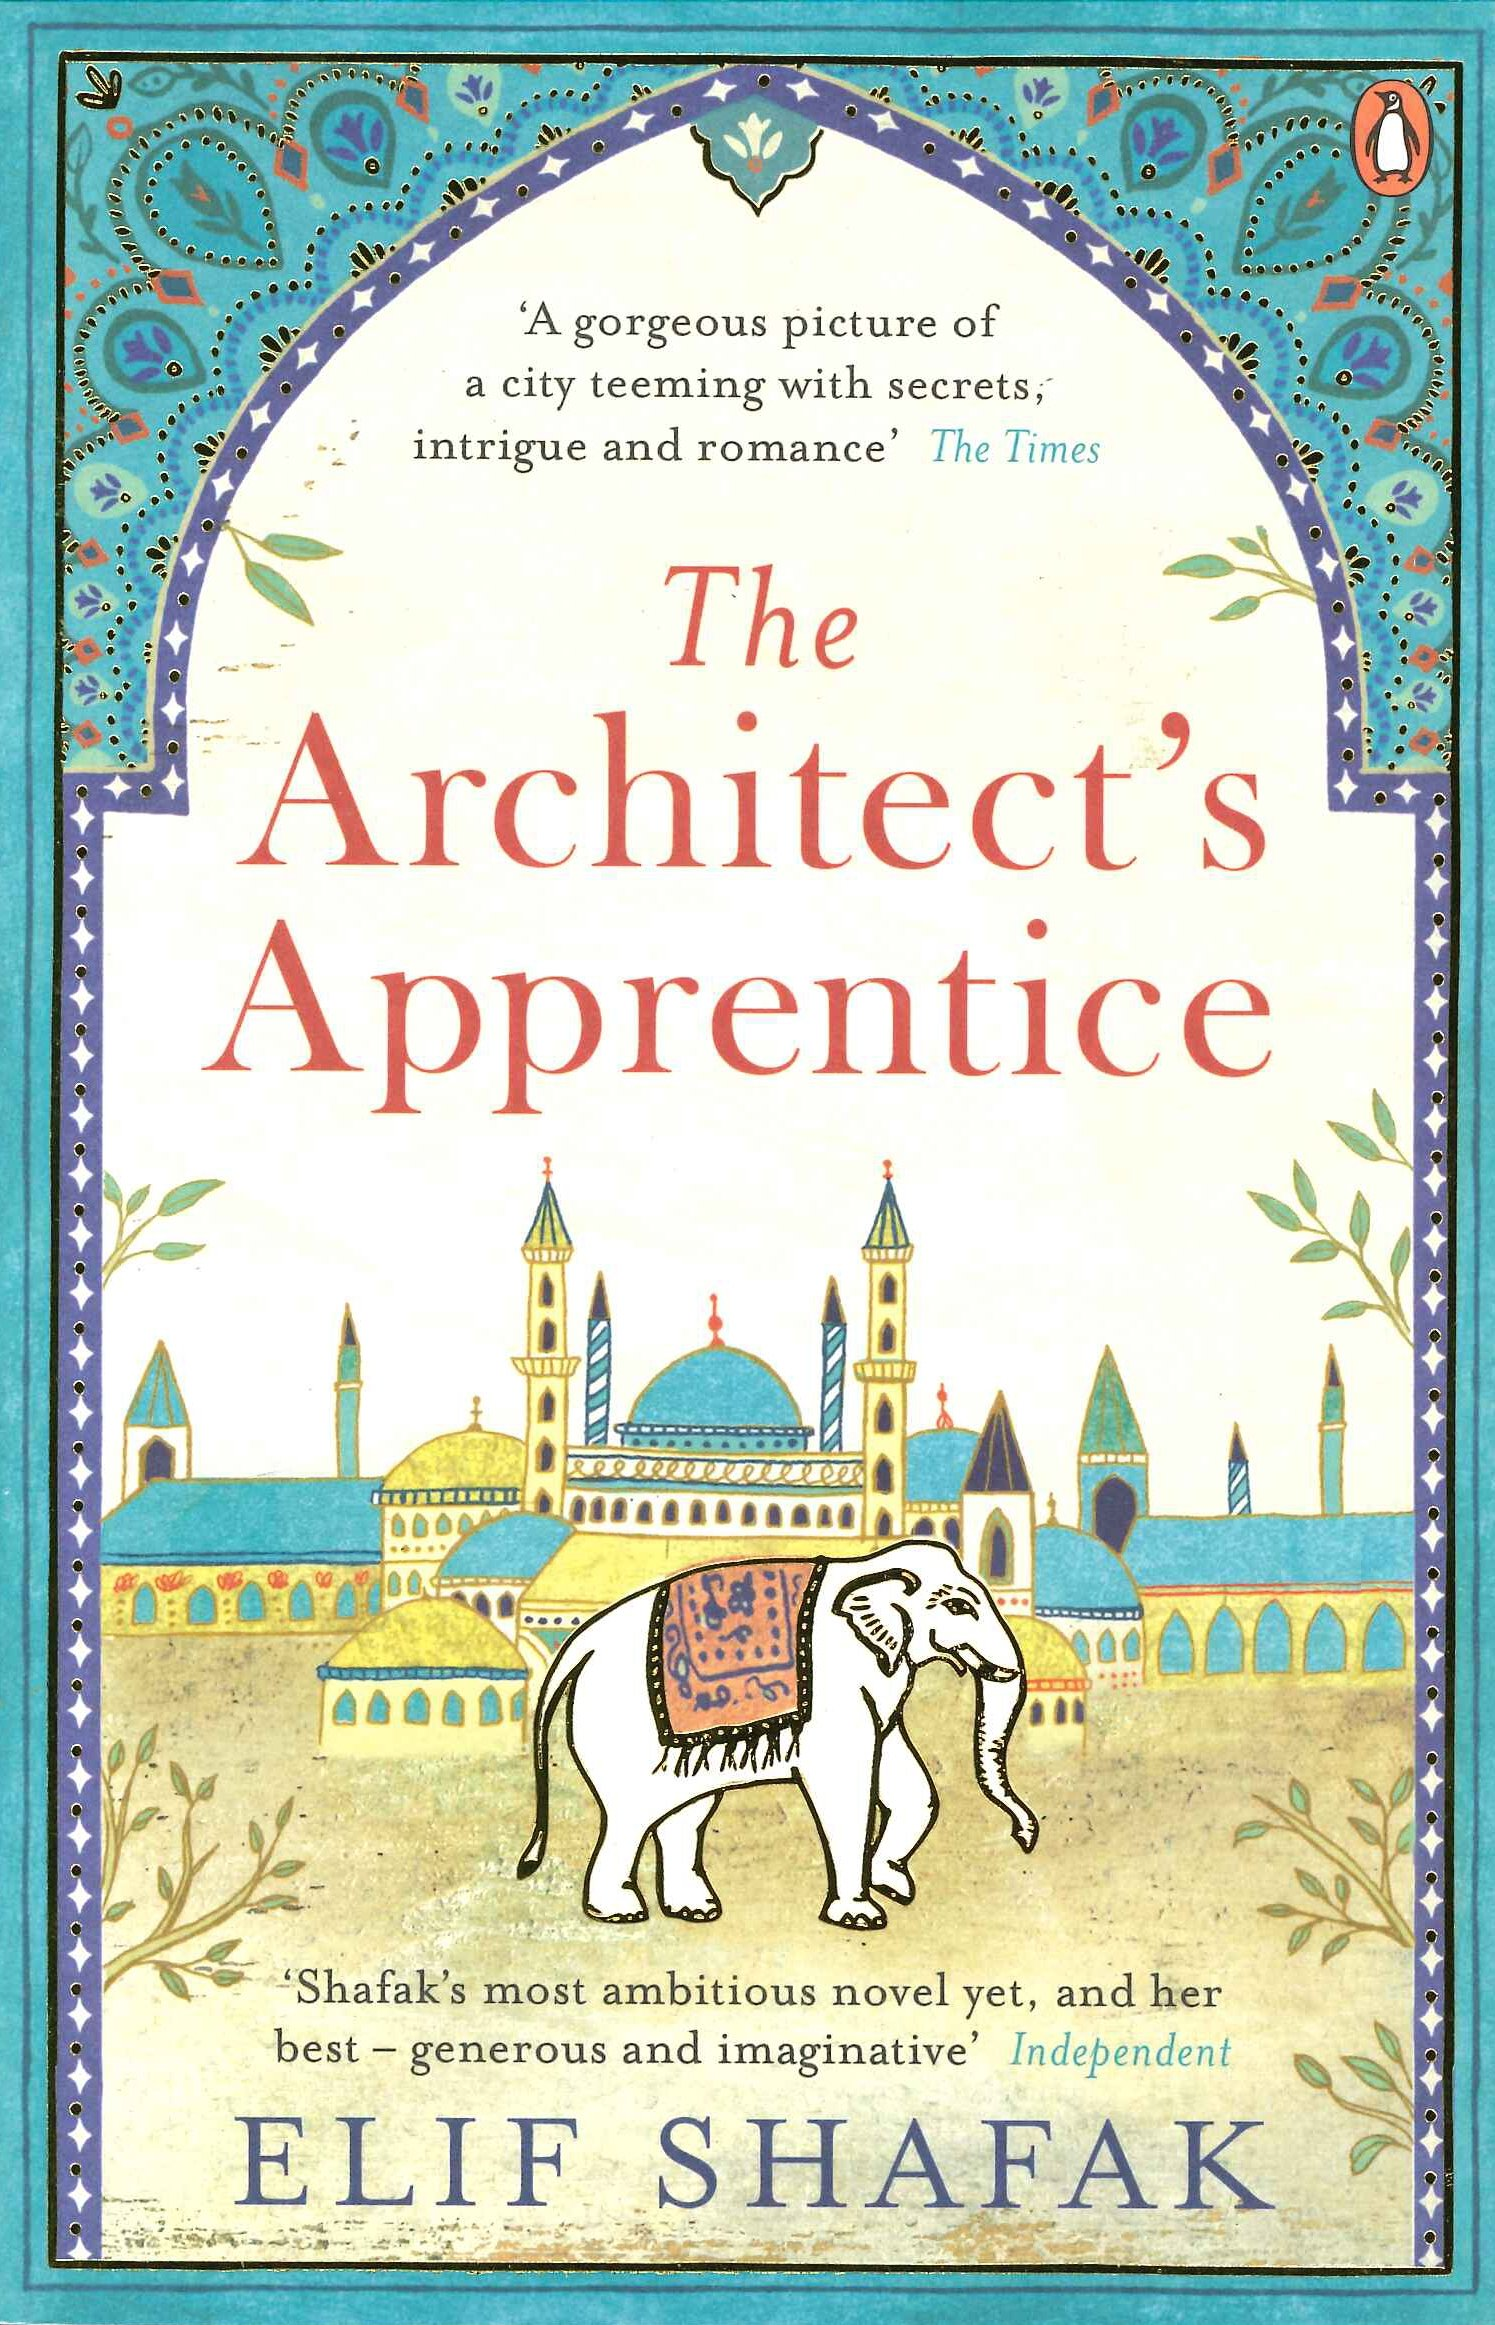 The Architect's Apprentice: Amazon.co.uk: Shafak, Elif ...